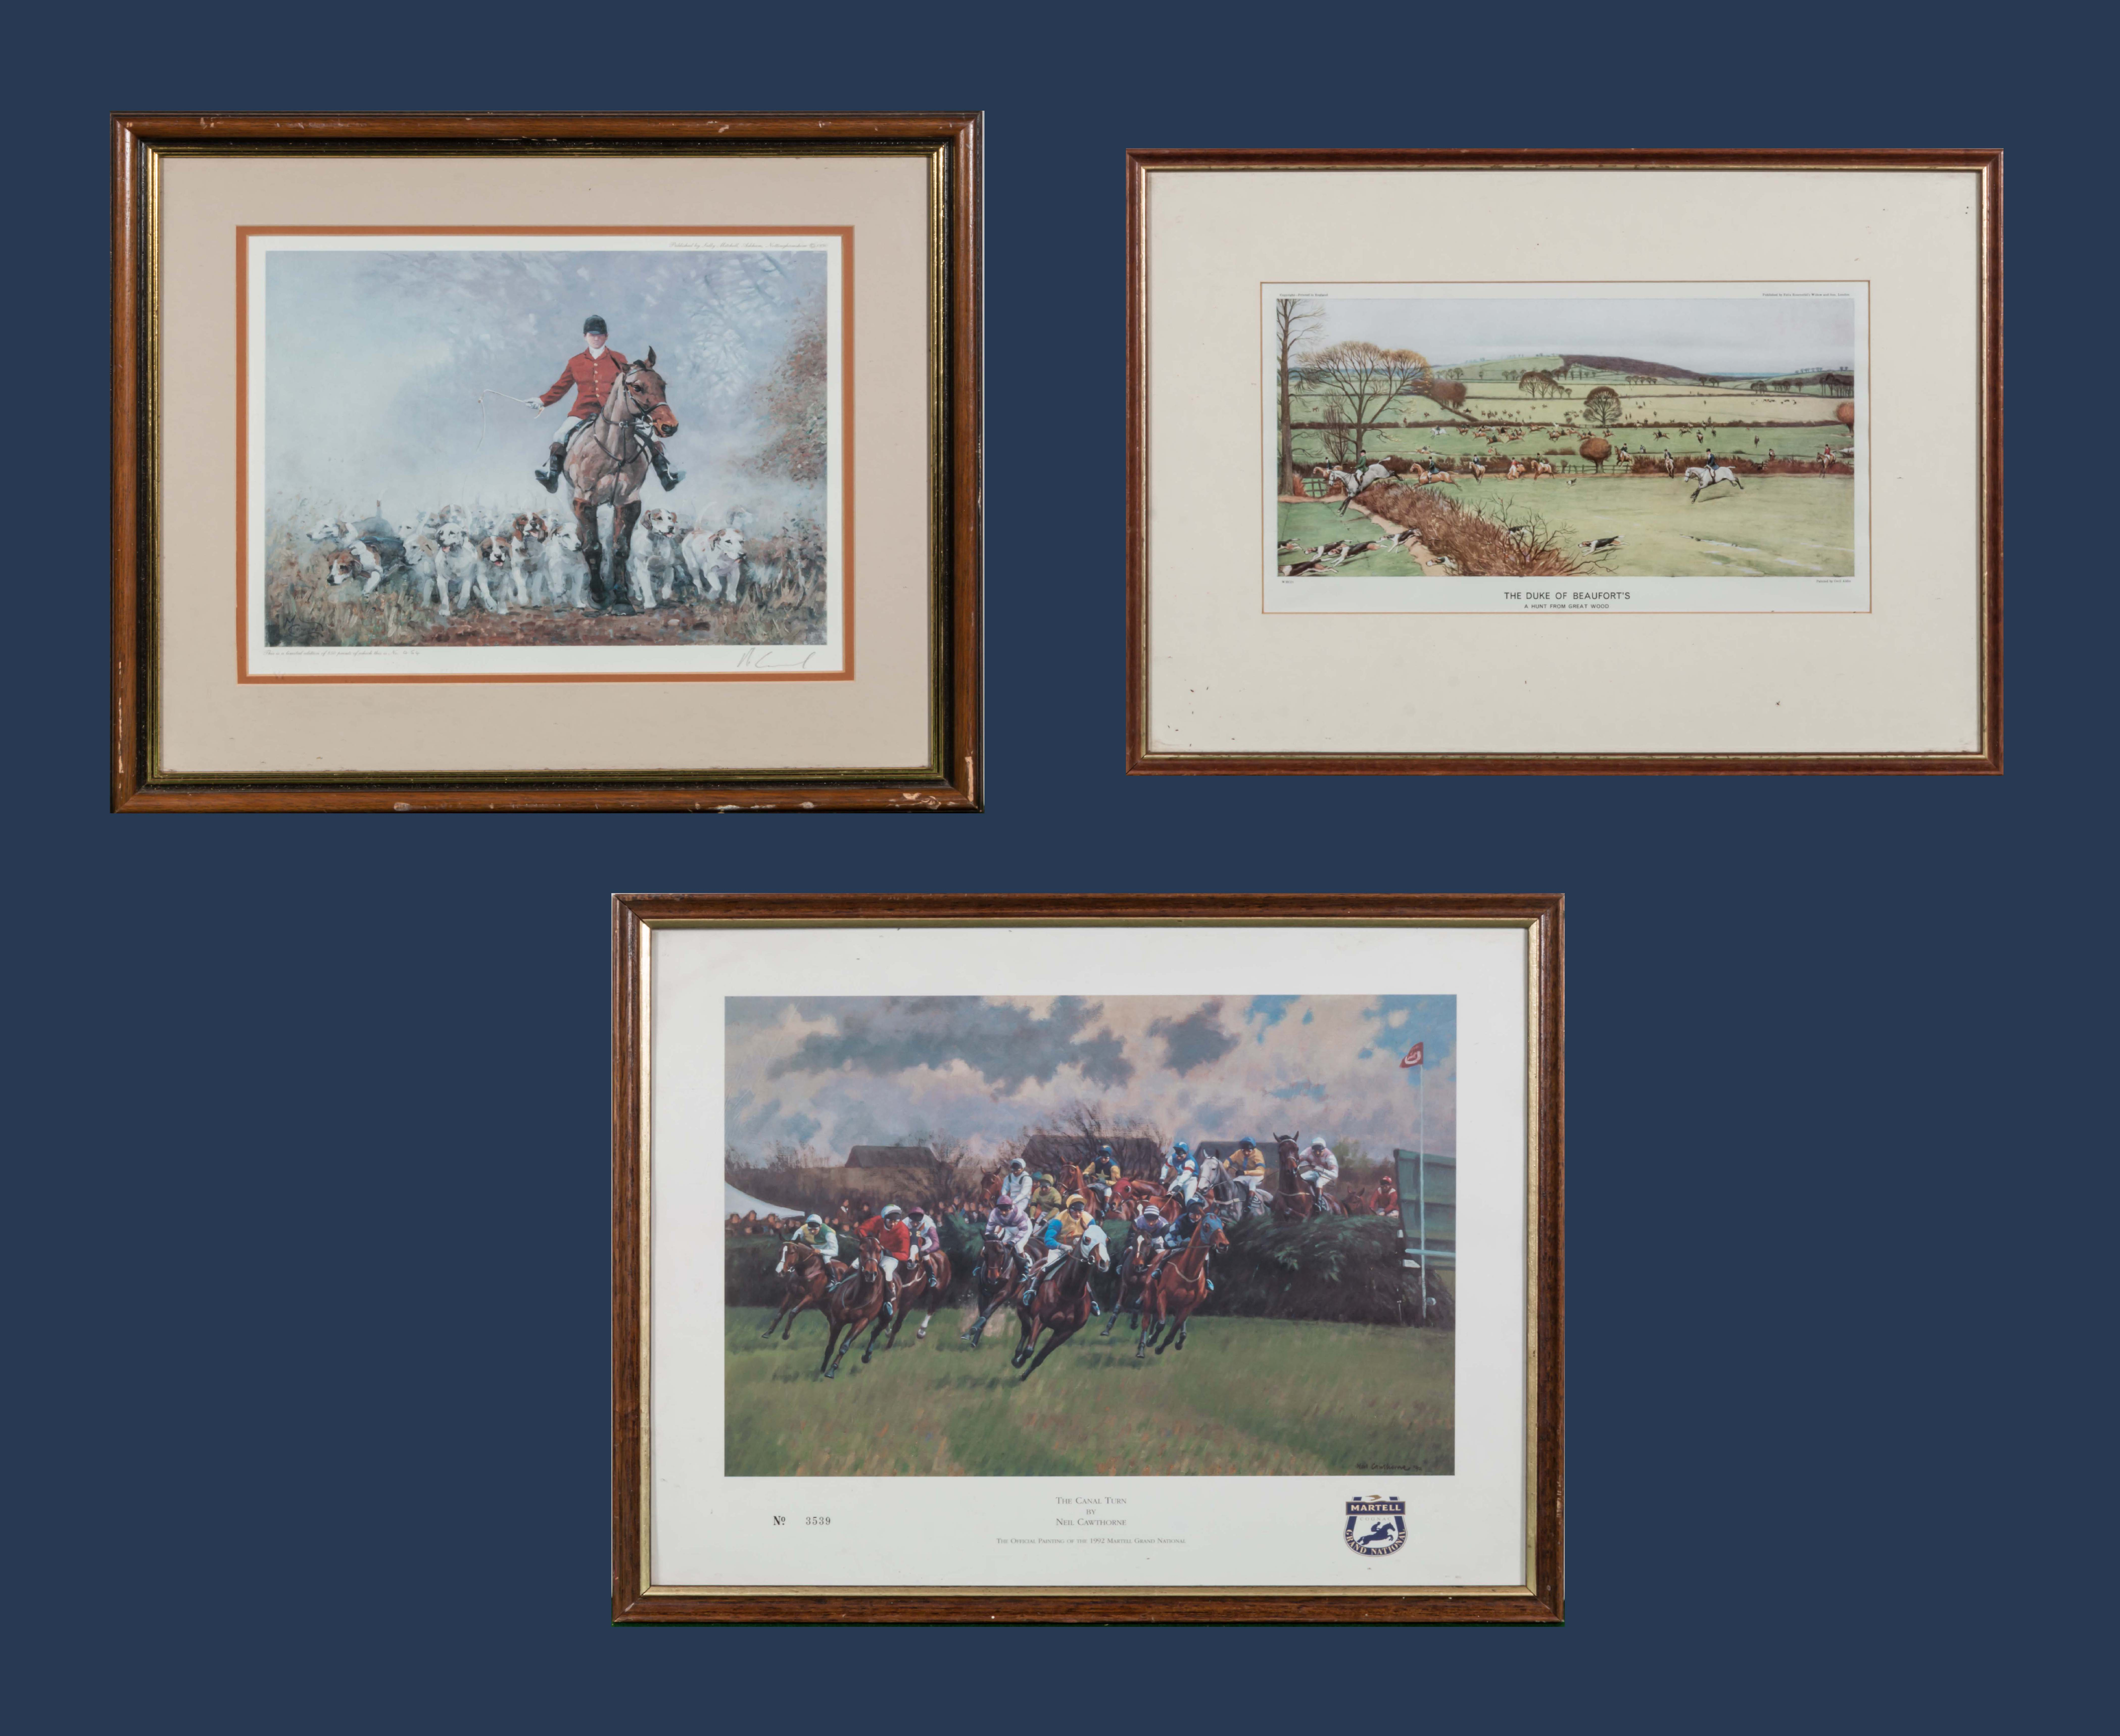 Lot 37 - Two limited edition prints and one other